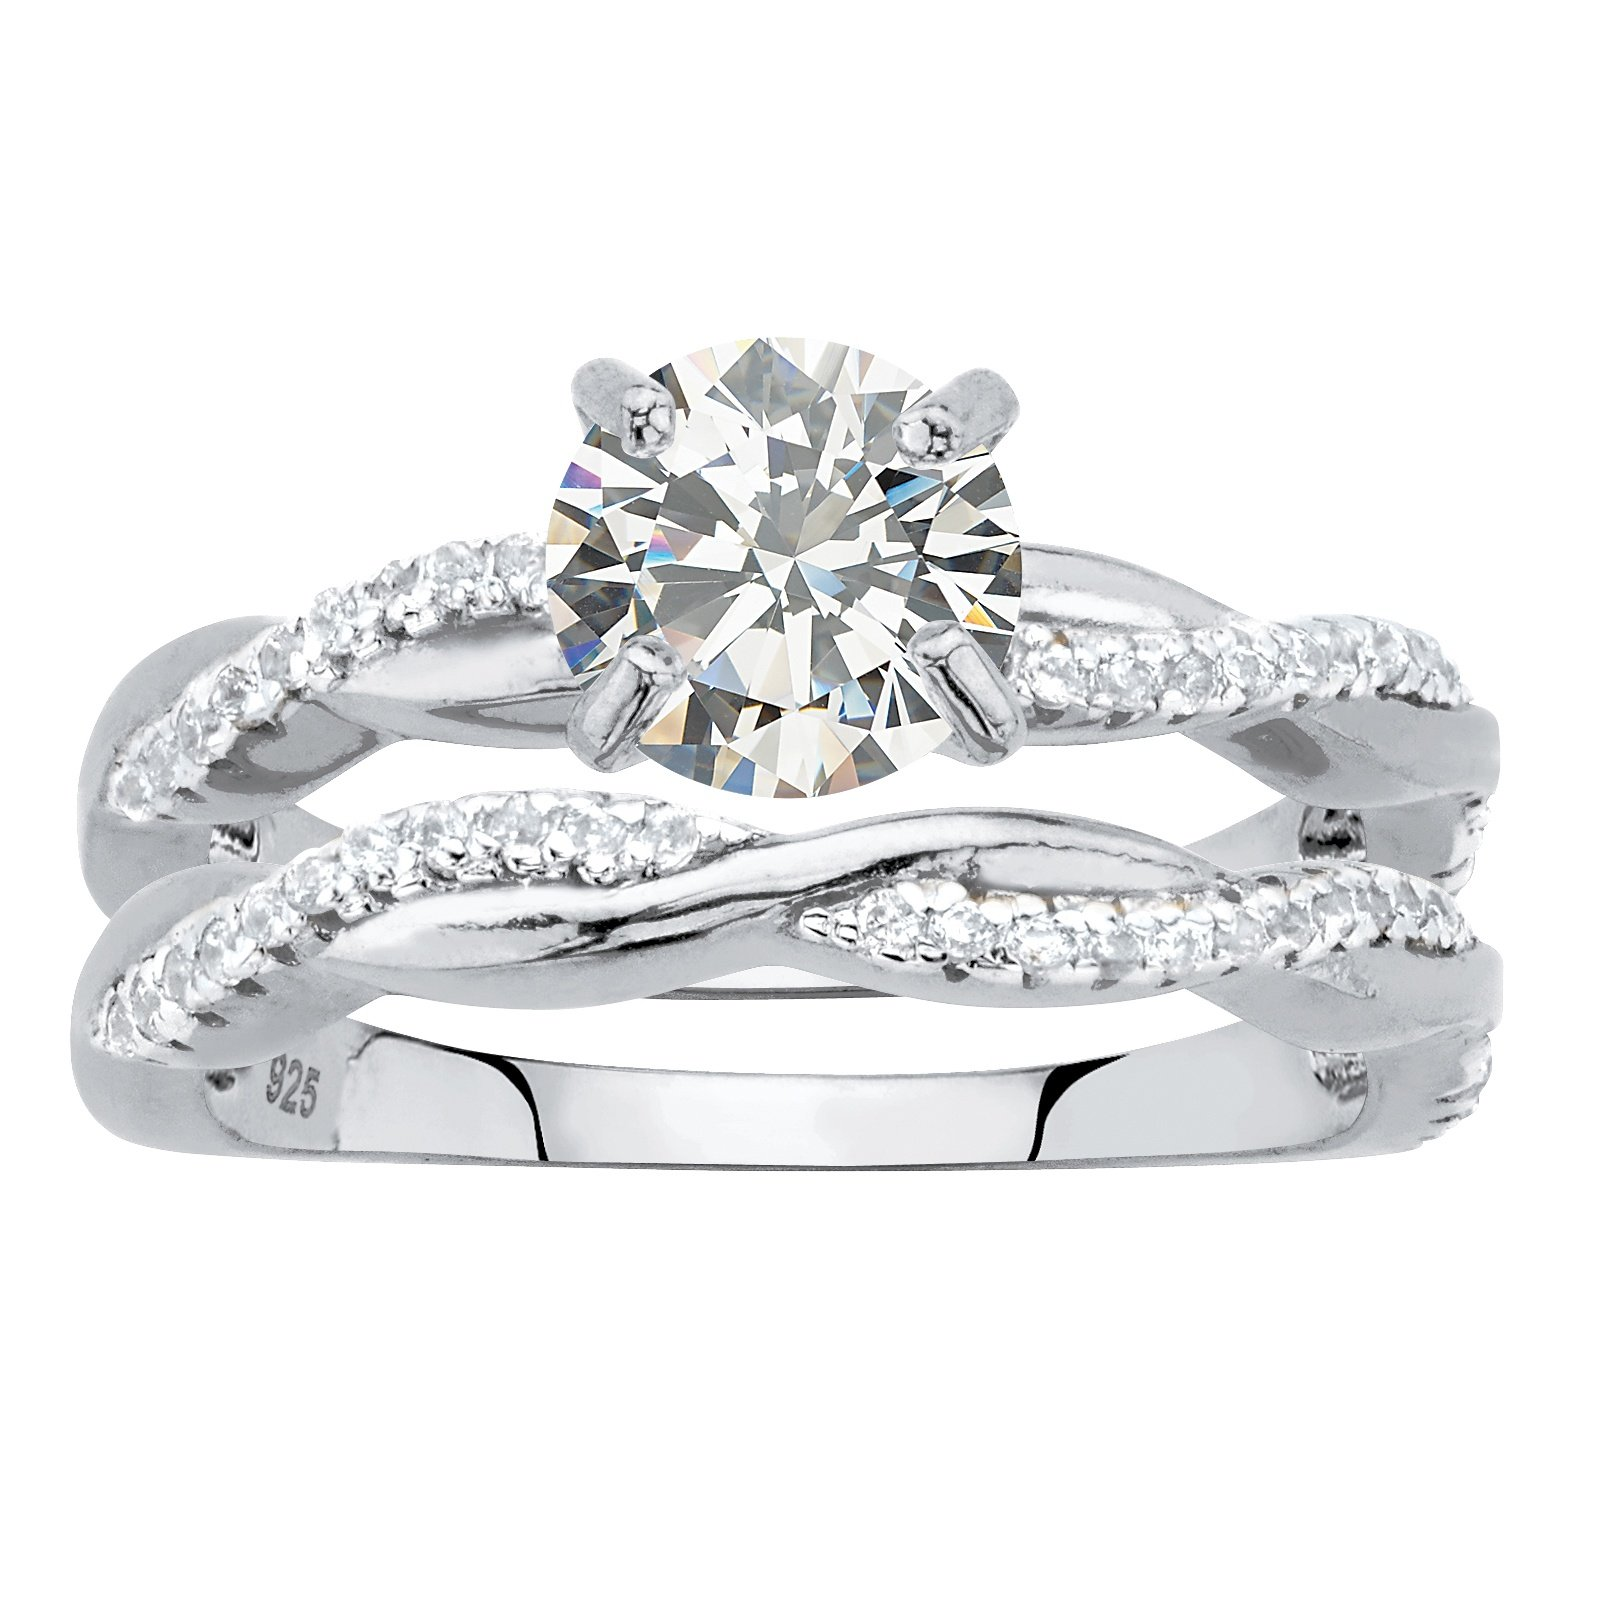 .925 Sterling Silver Round Cubic Zirconia 2 Piece Twisted Vine Wedding Ring Set Size 6